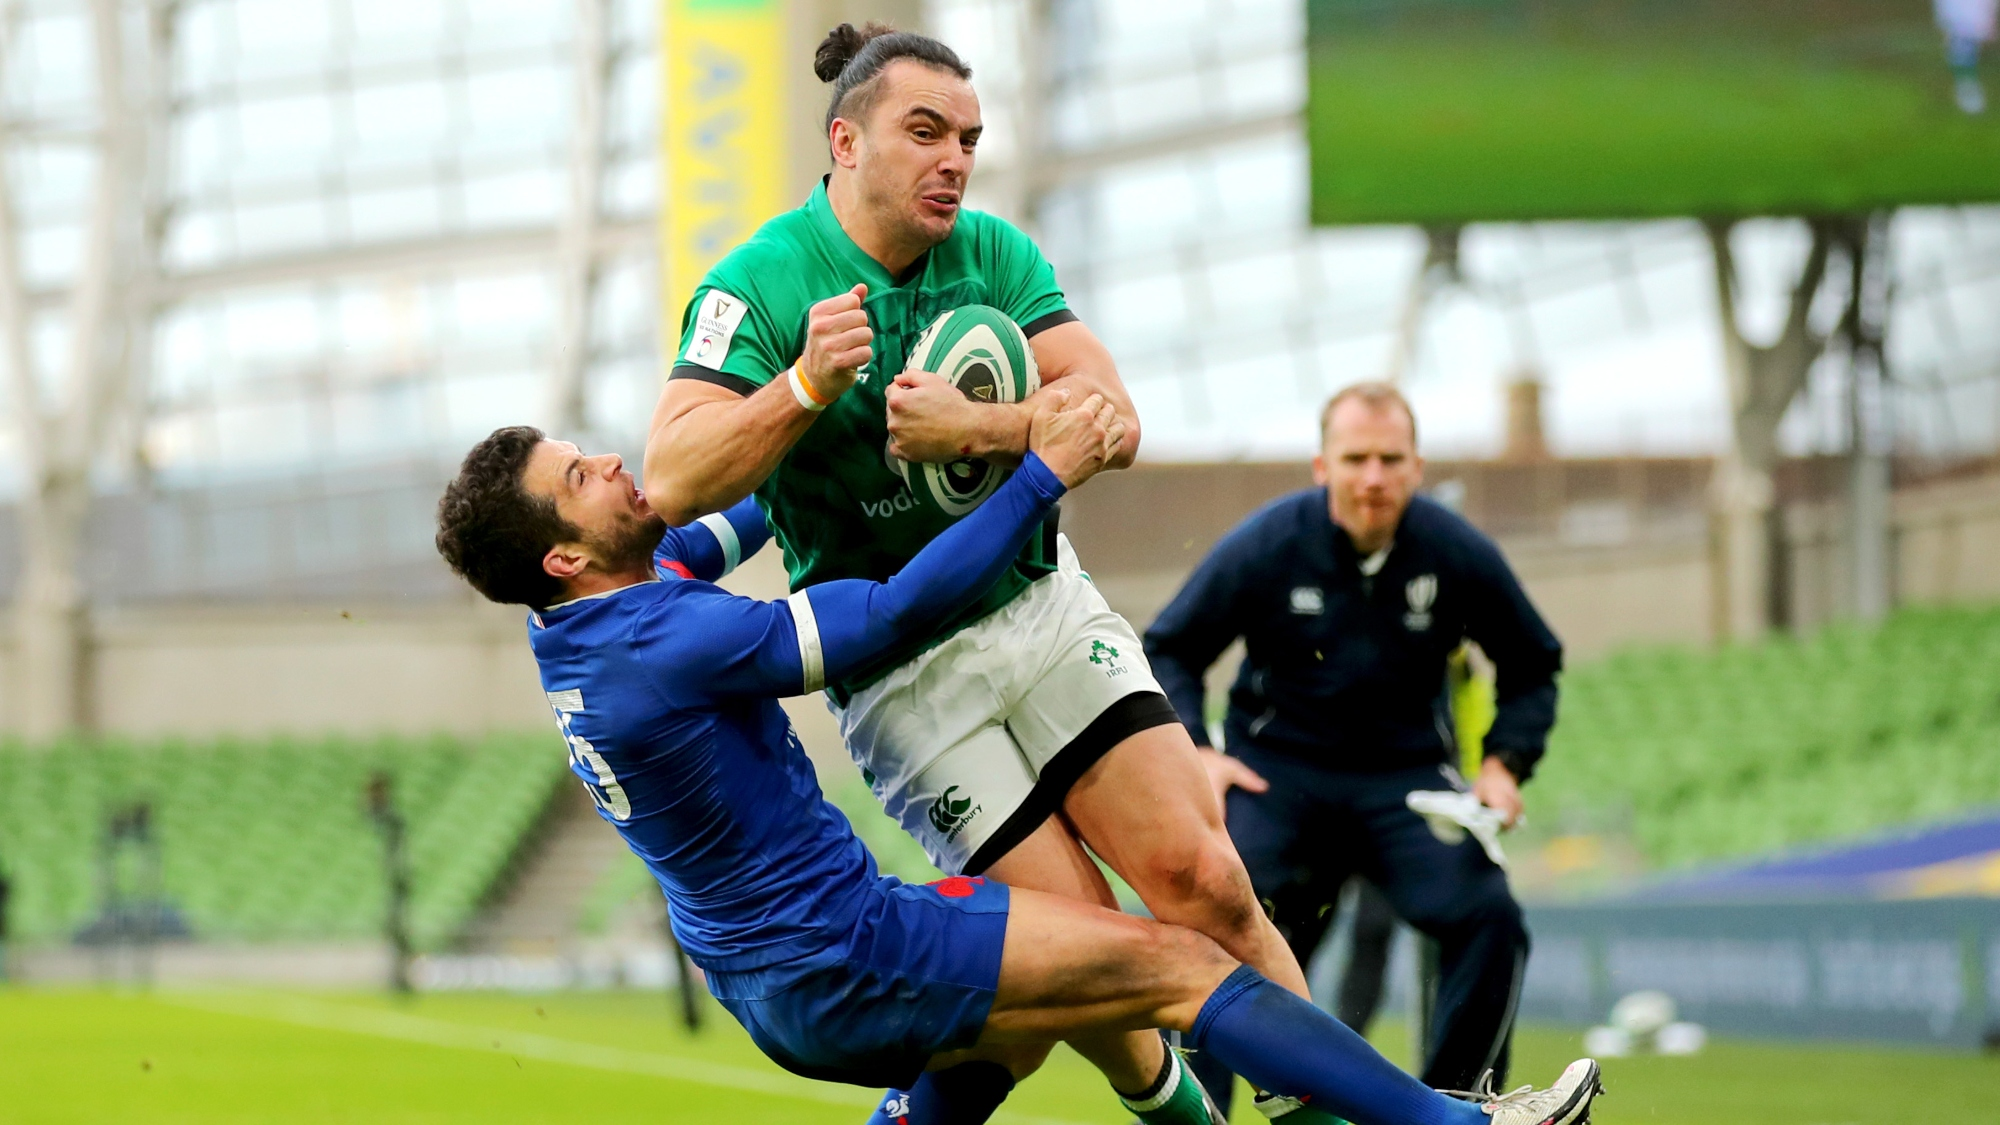 James Lowe came close to scoring as Ireland face France at the Aviva Stadium in Round 2 of the Guinness Six Nations